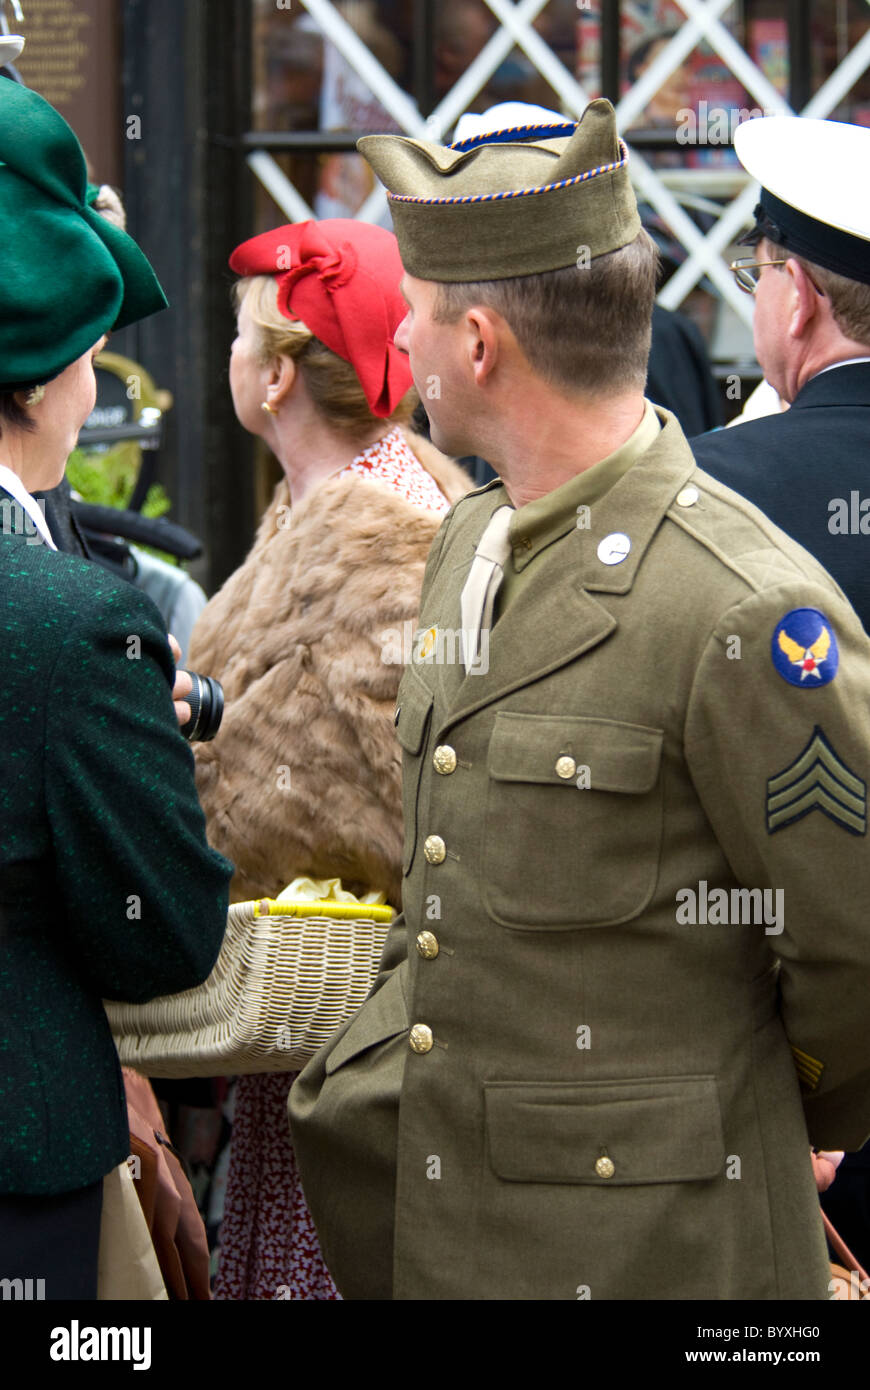 Military uniforms and civilian costumes at the Haworth 1940s weekend. - Stock Image